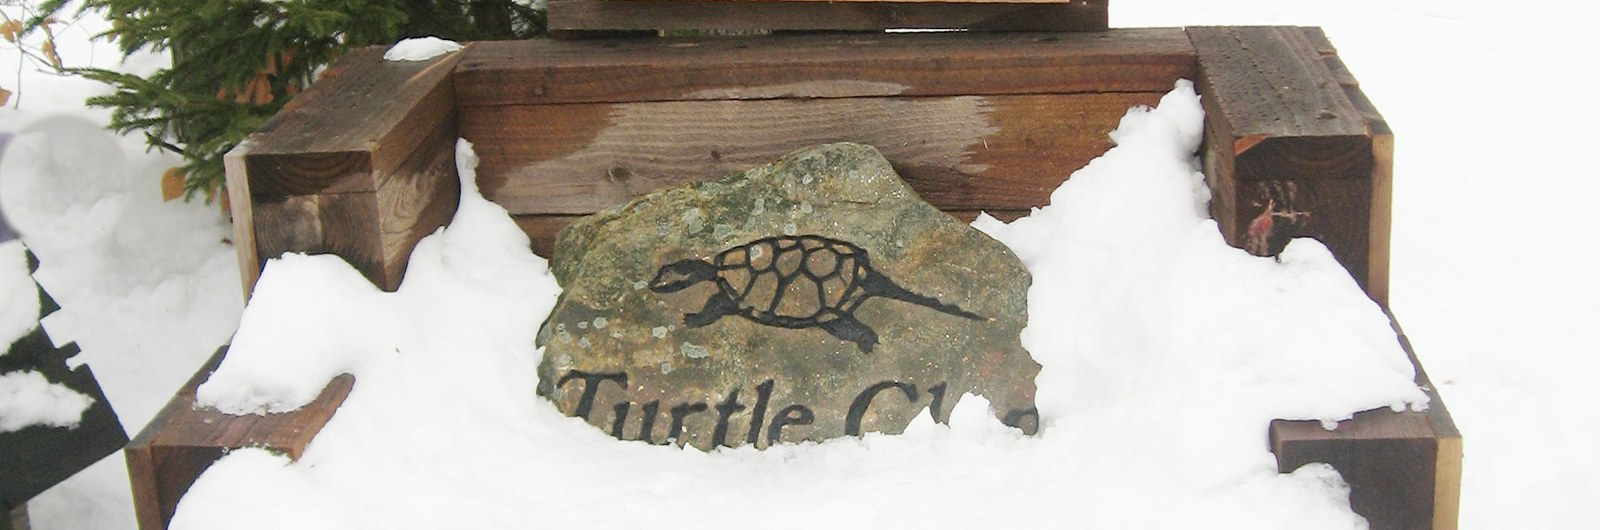 Turtle Clan Rock